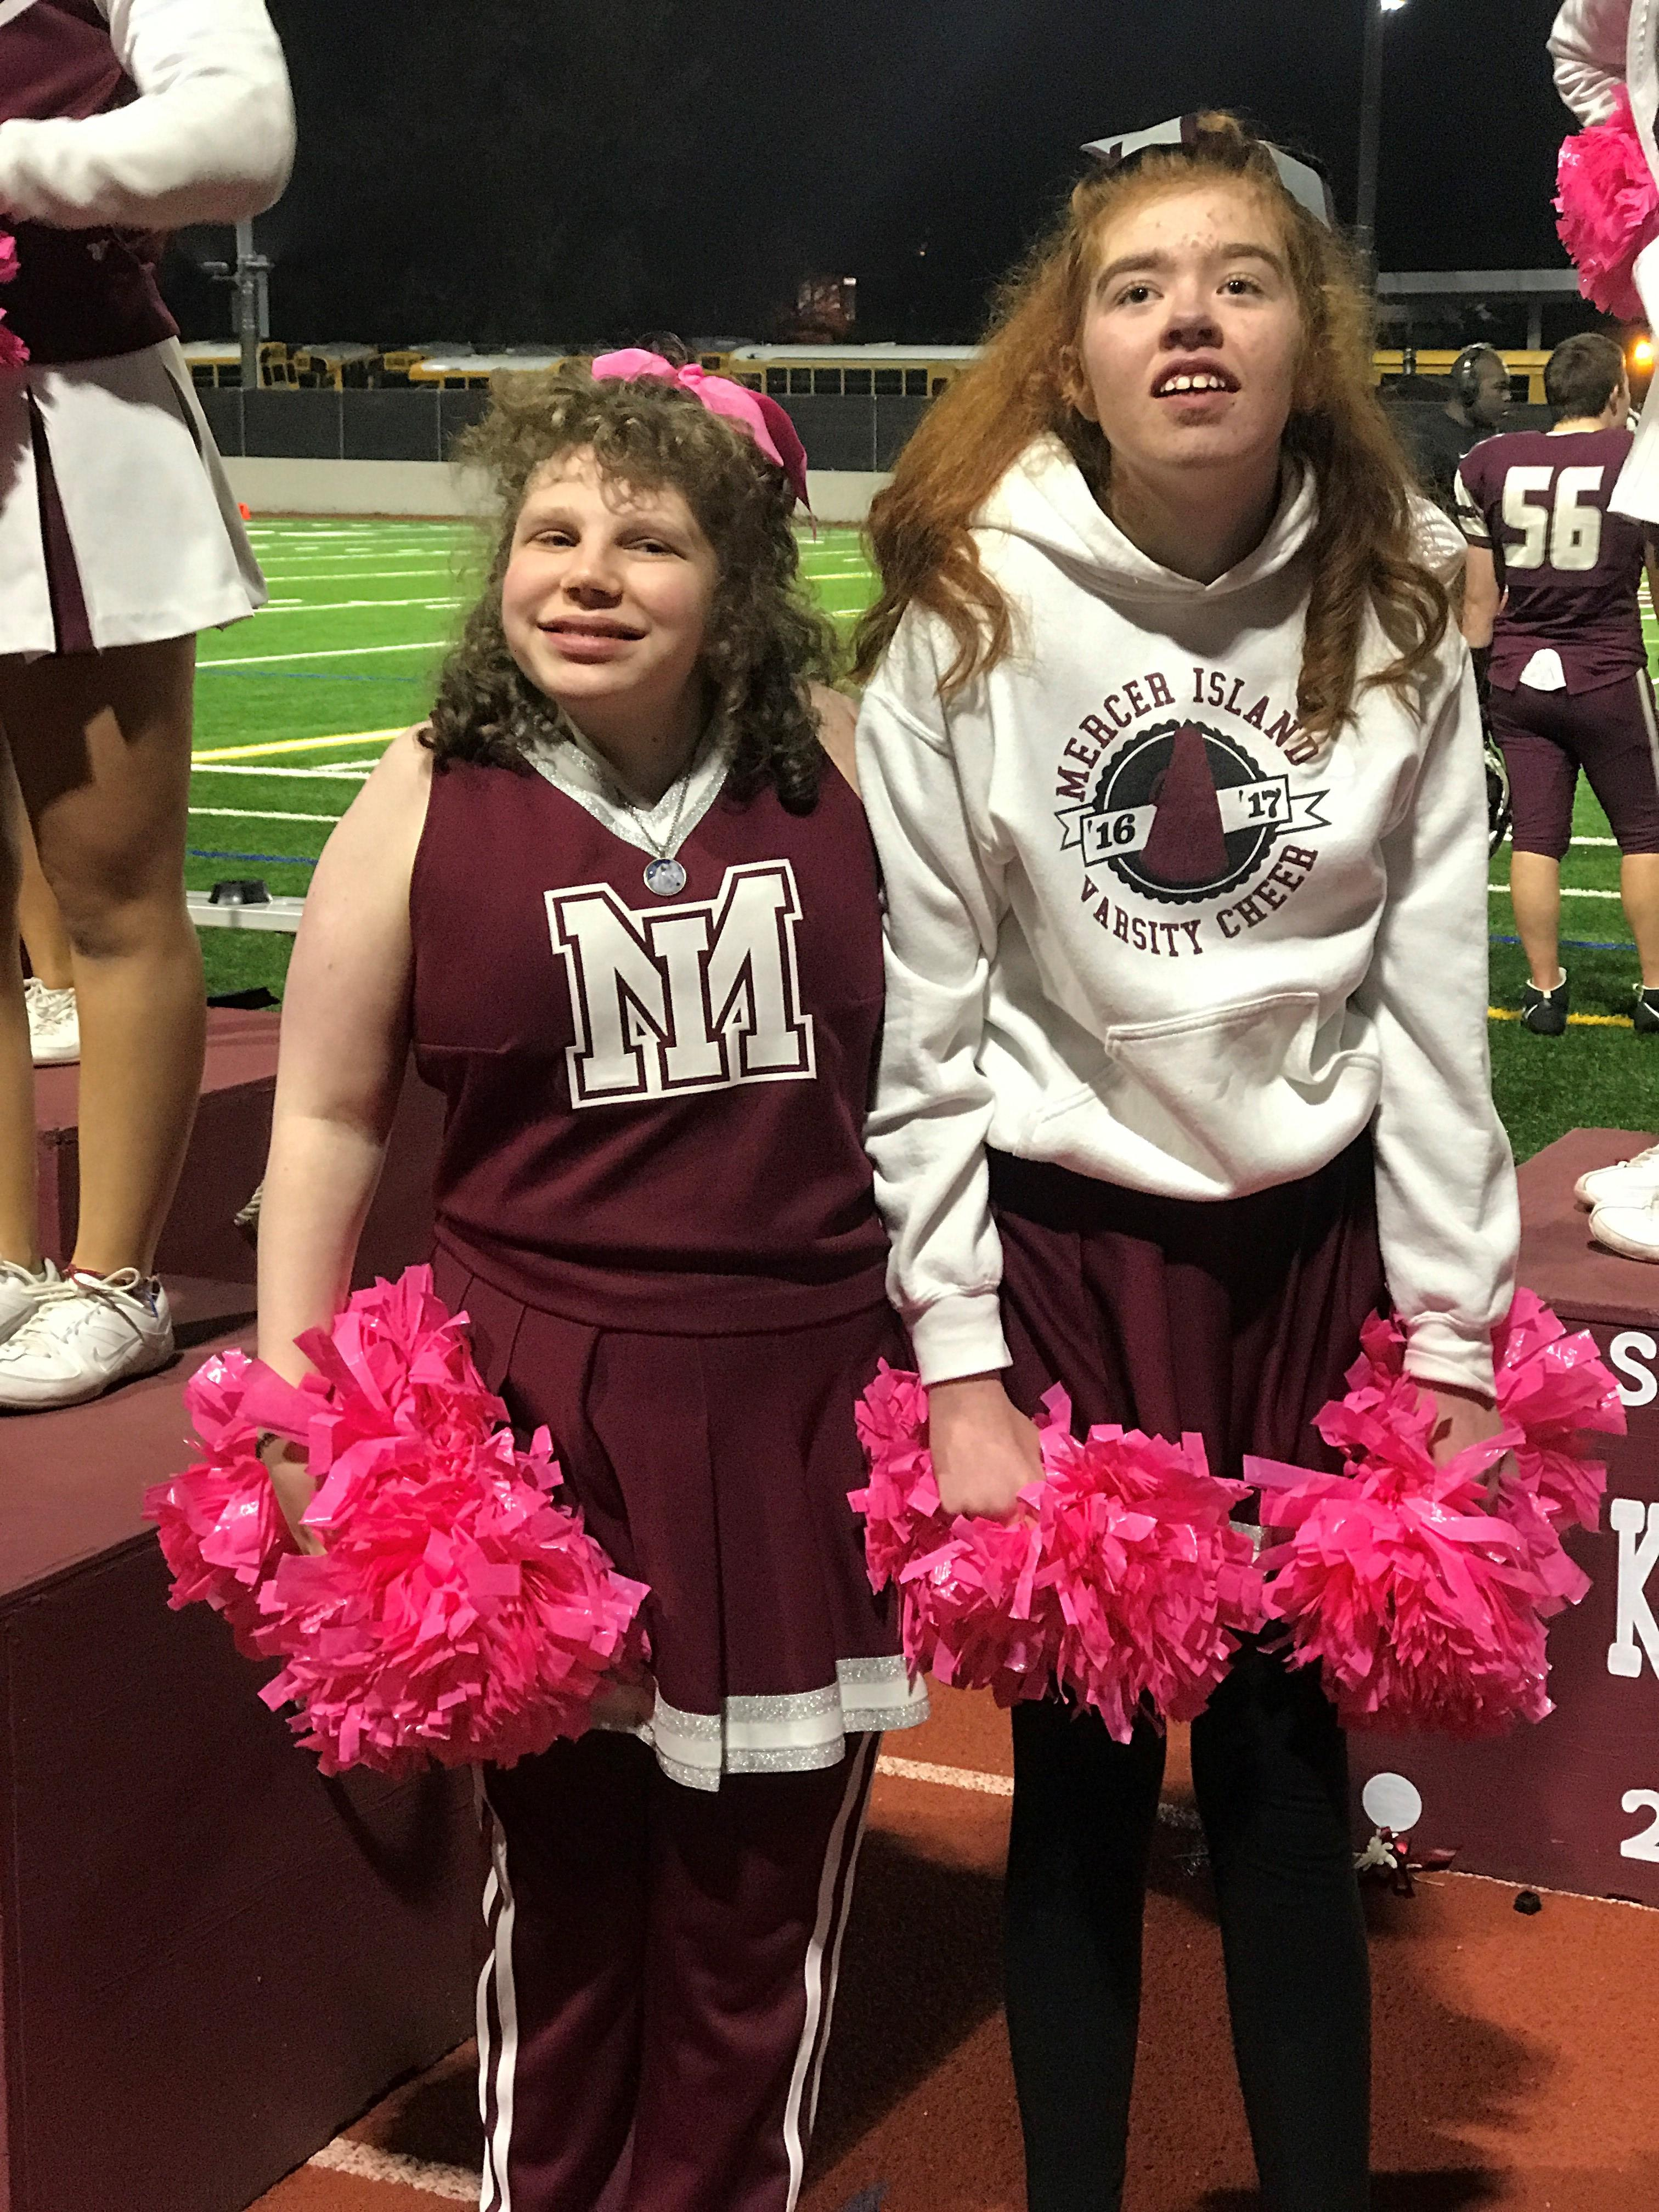 Sparkle Squad is a cheer squad at Mercer Island High School.{ } The teens (with and without disabilities) work together and cheer at games, assemblies, parades and special events in the community.{ } Jami Blumenstein is their coach.{ }(Image Jeff Pimentel /Sparkle Squad)